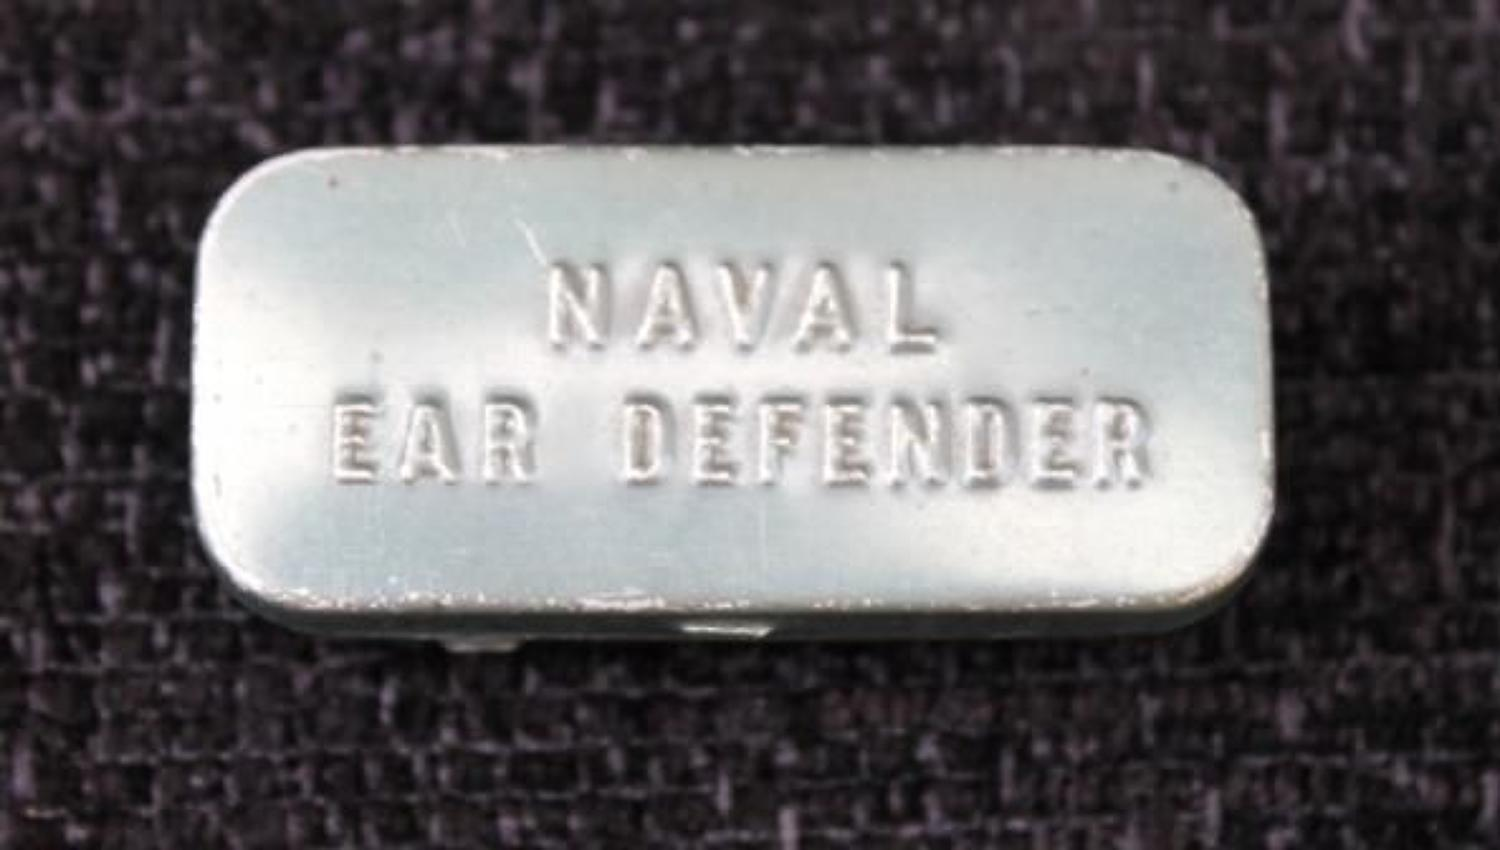 Naval Ear Defender Tin